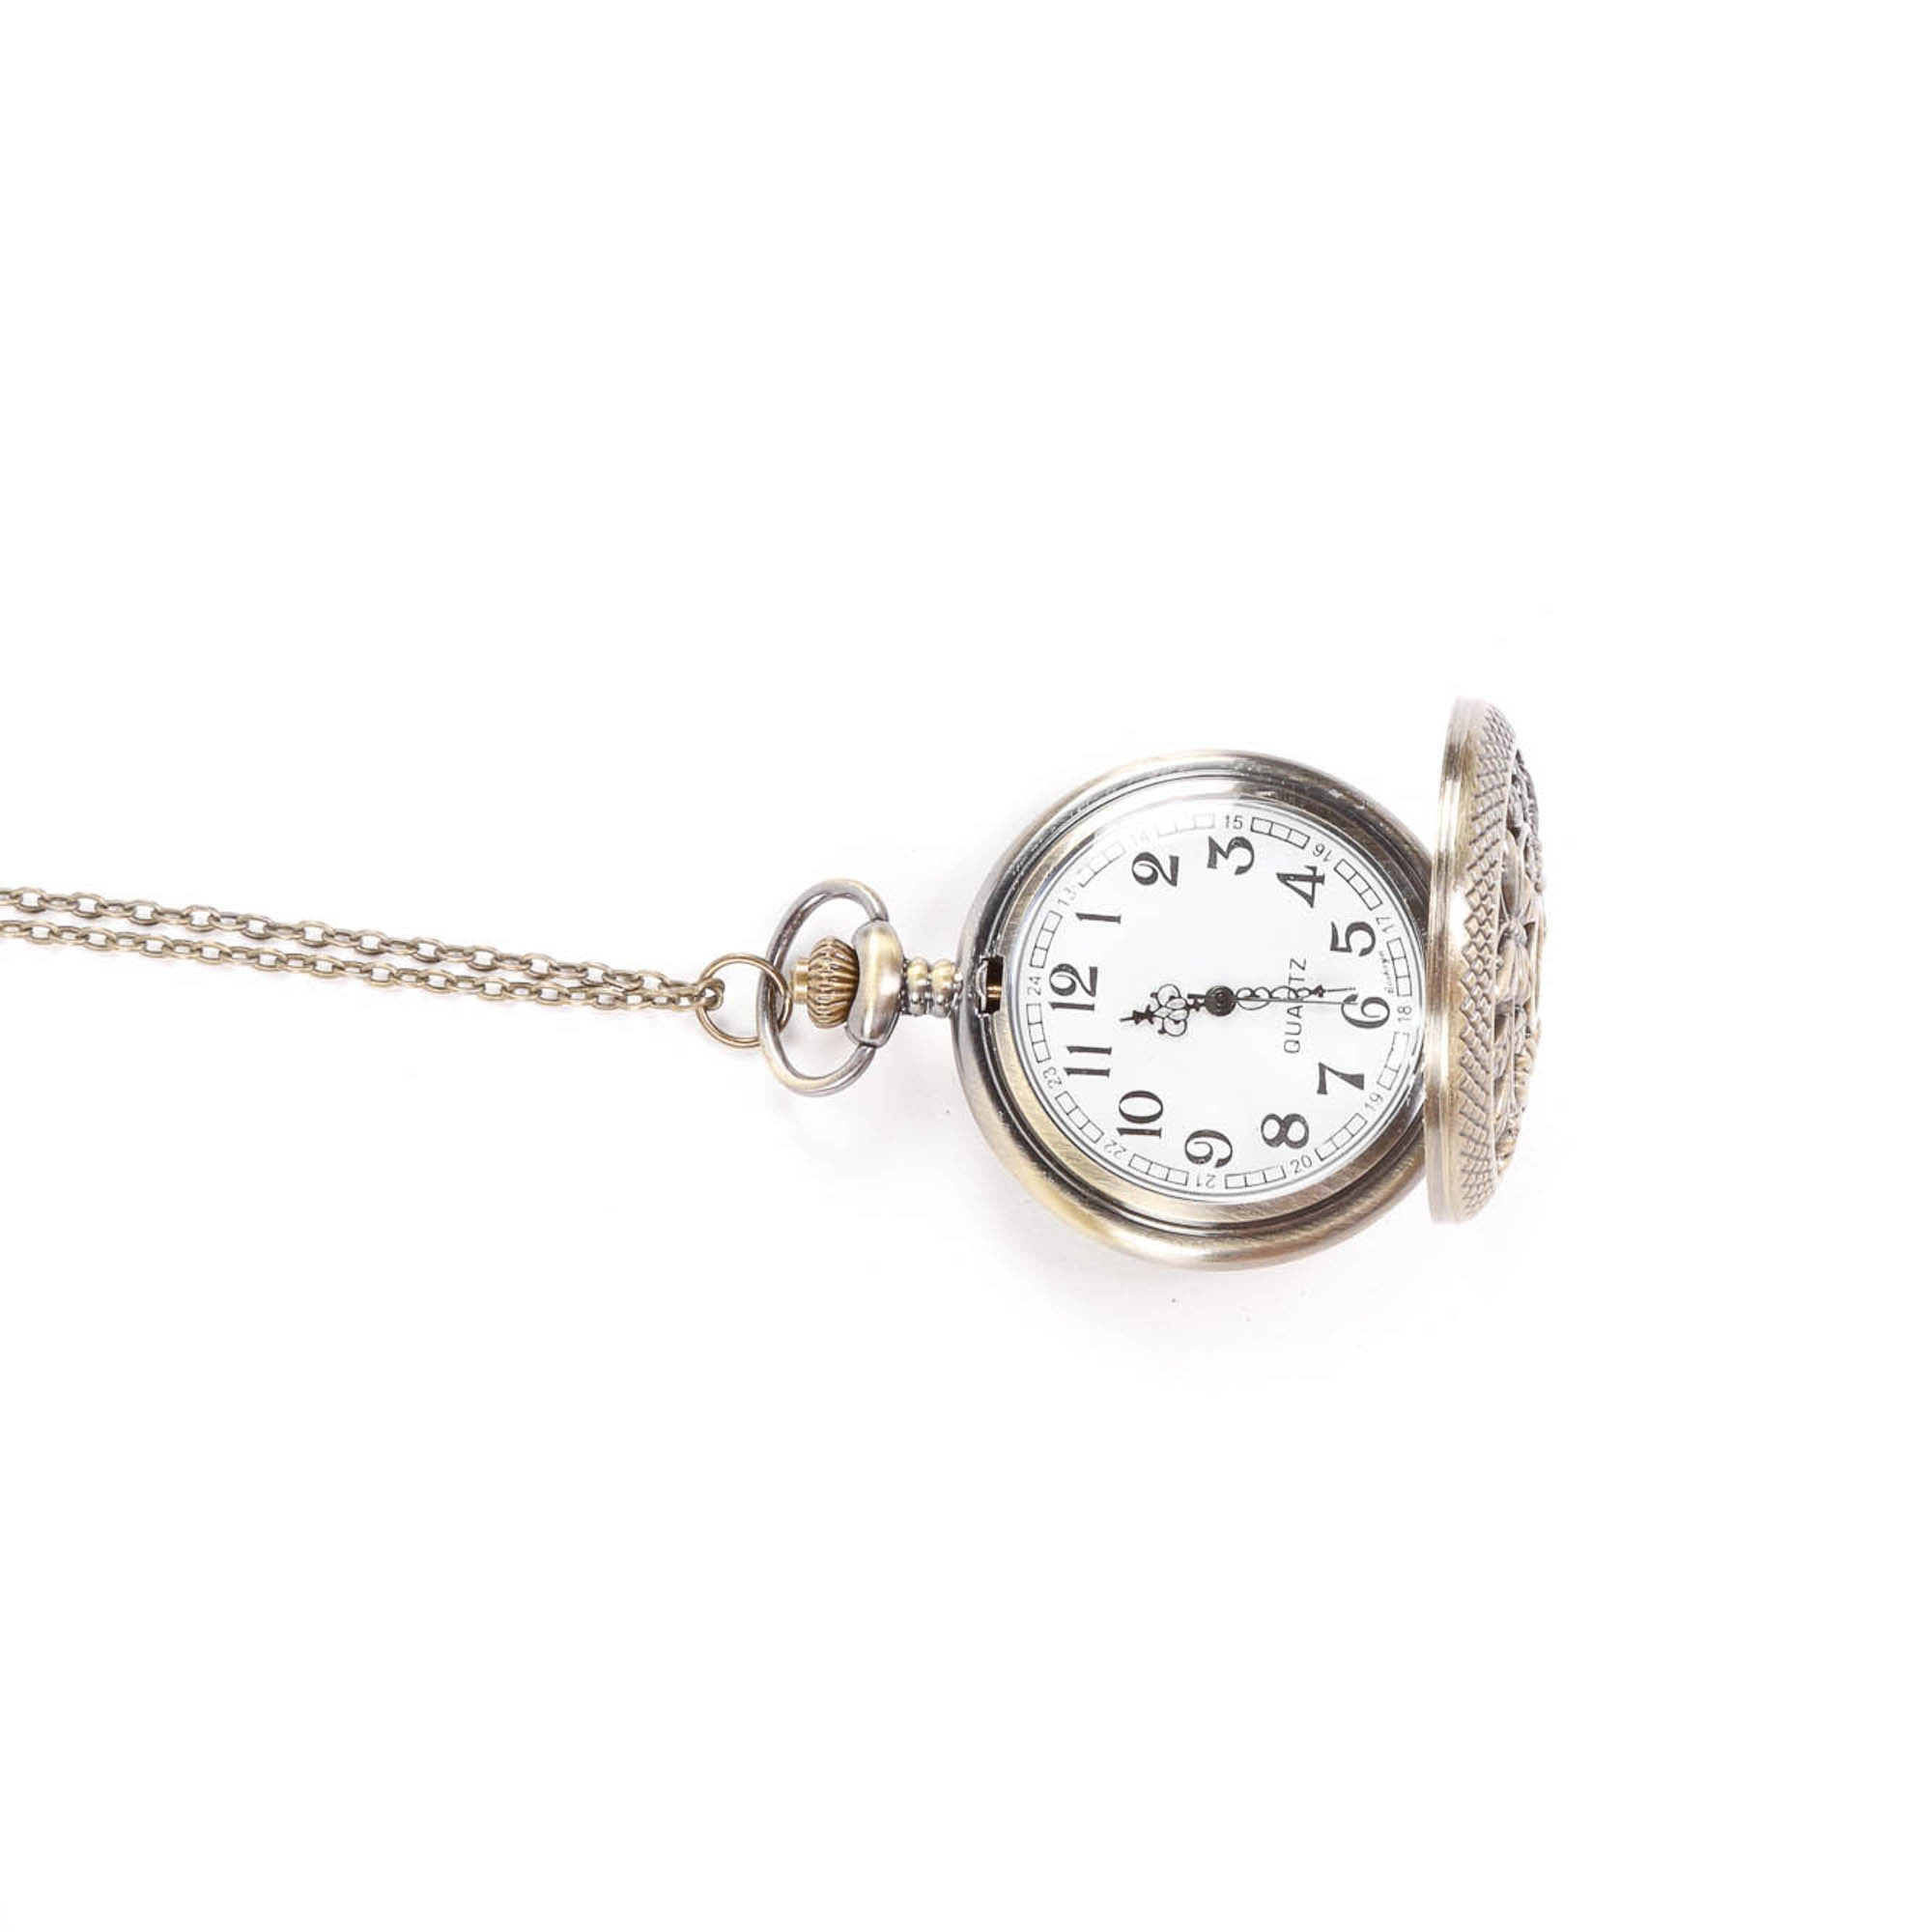 Timepiece Fashion Necklace